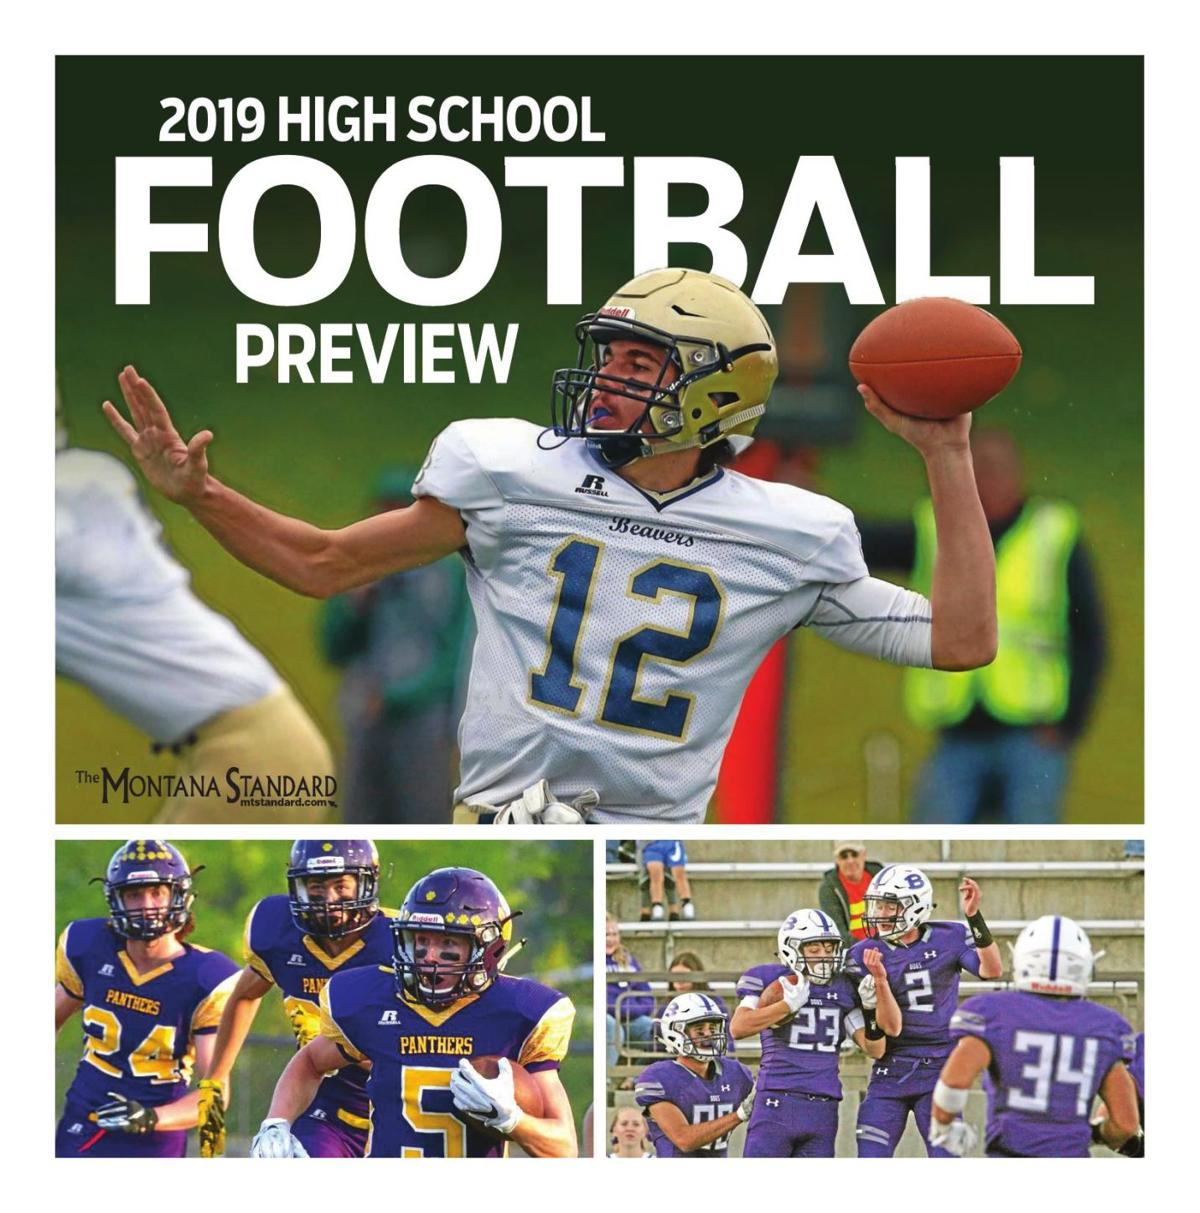 High School Football Preview 2019